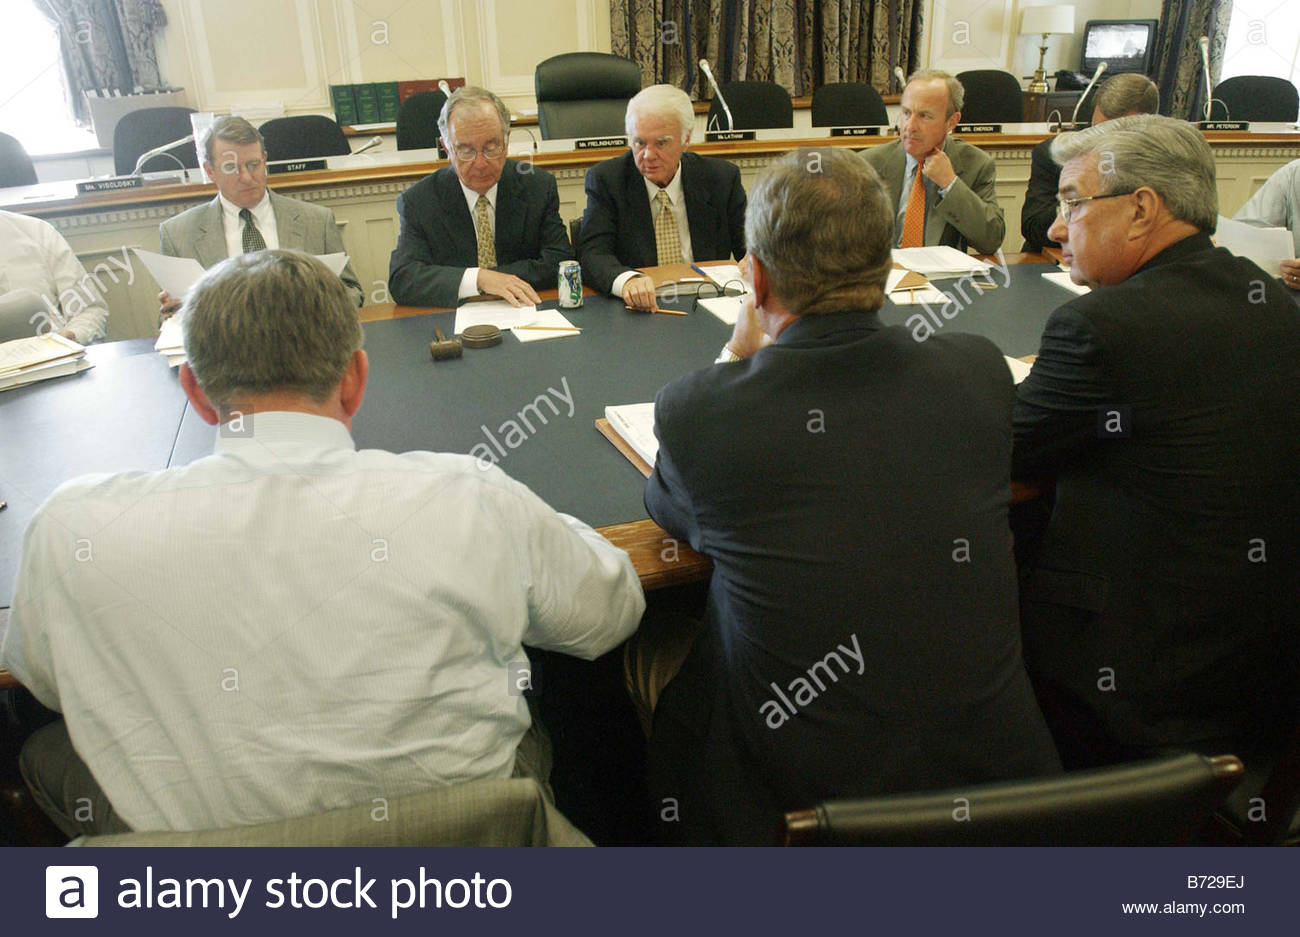 7 8 03 ENERGY AND WATER House Appropriations Energy And Water Subcommittee  Chairman David L Hobson R Ohio Facing Camera And Ranking Democrat Peter J  ...